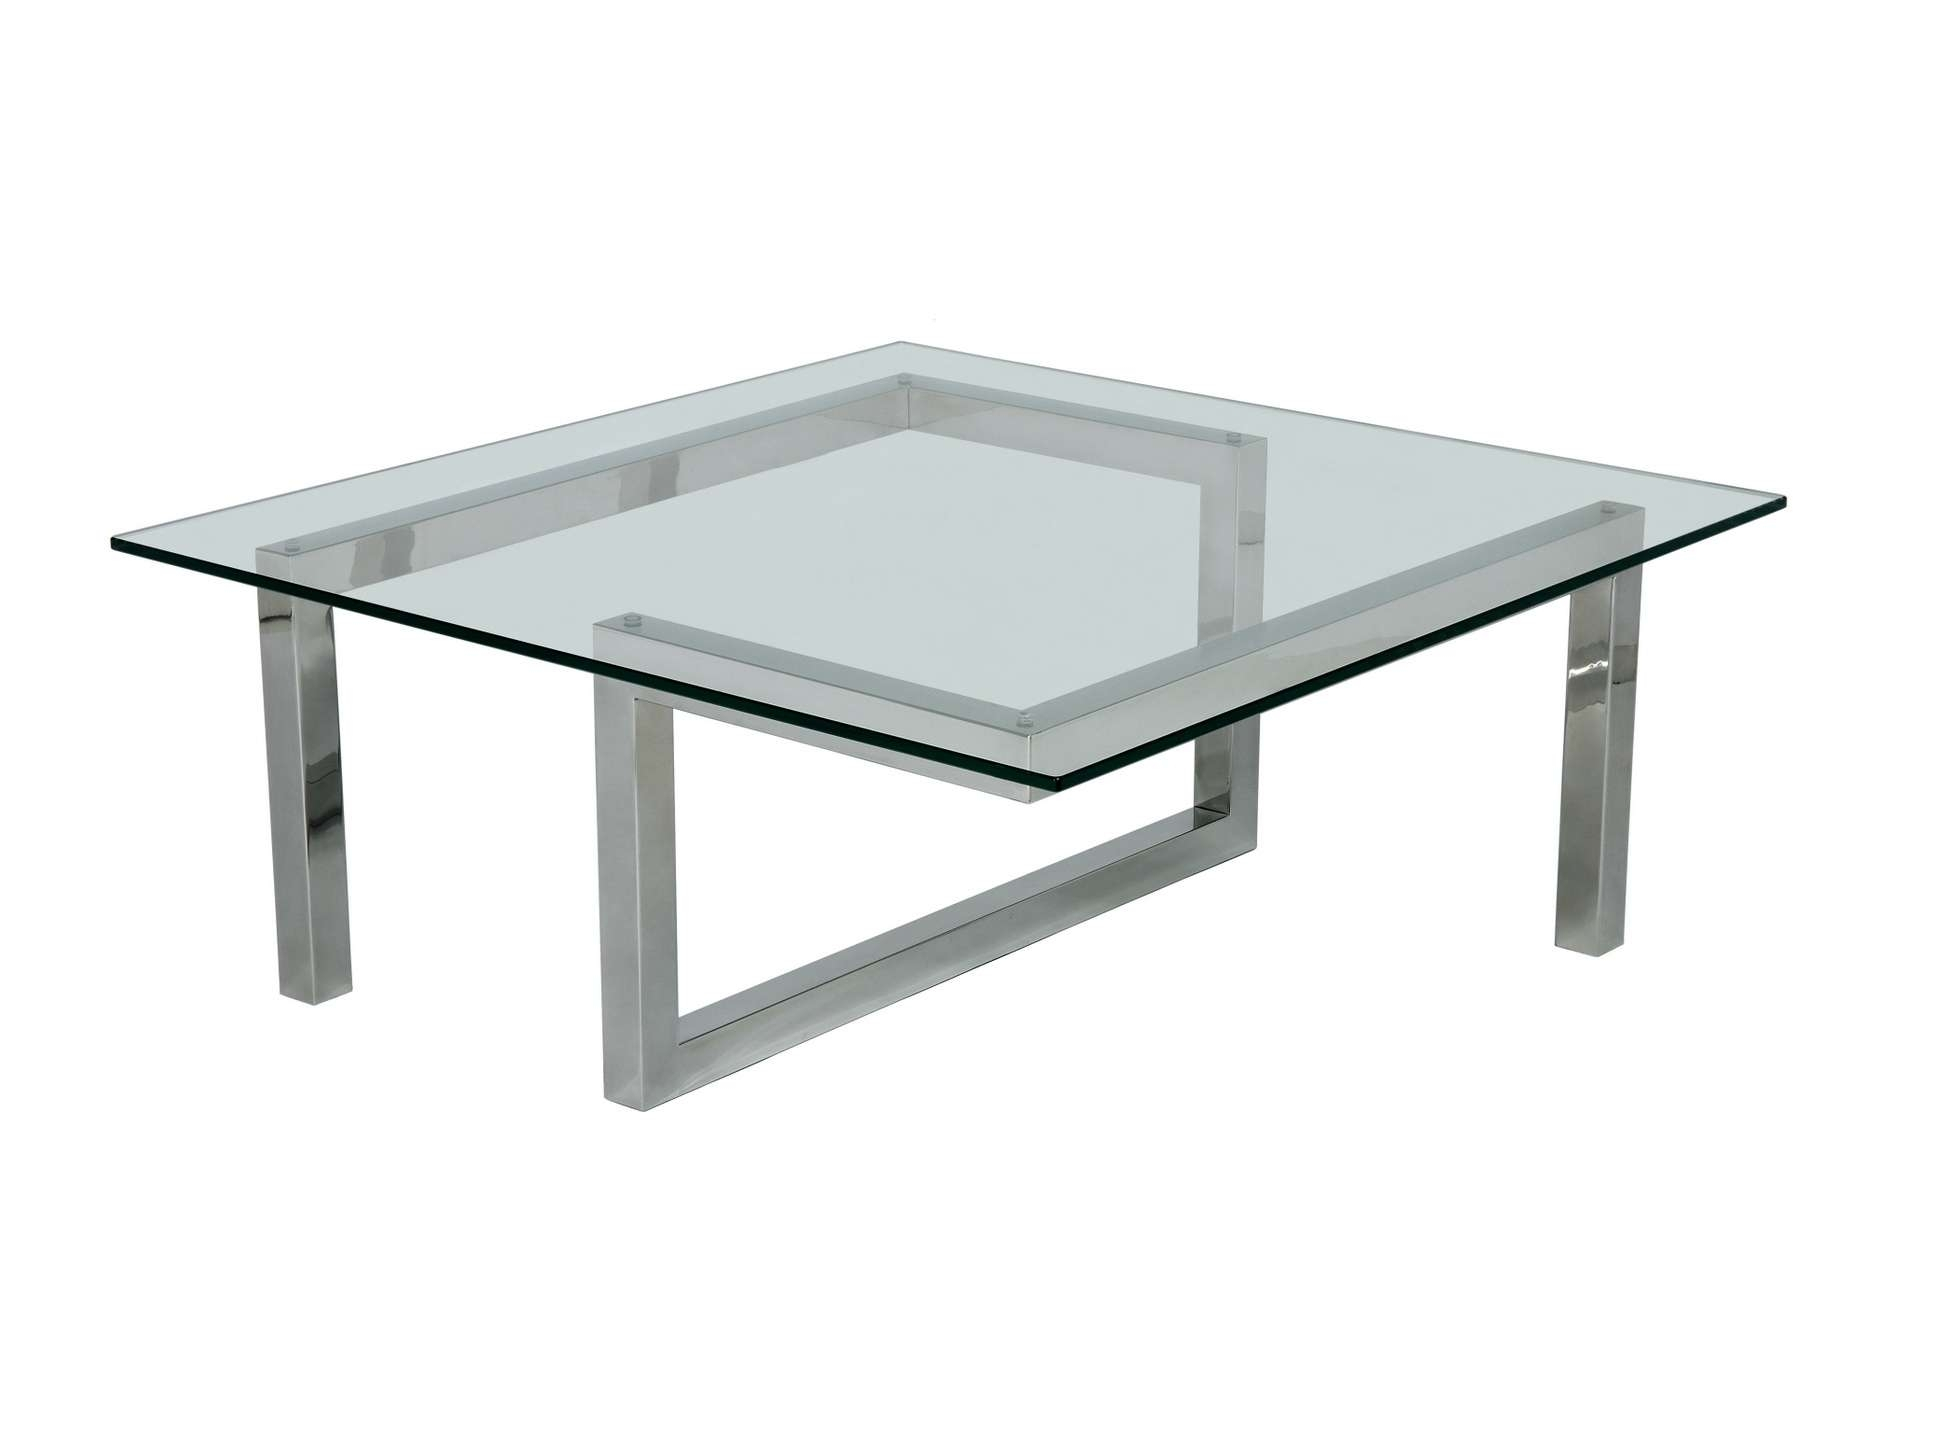 Decorations : Modern Glass Top Coffee Tables With Metal Base Pertaining To Newest Metal Square Coffee Tables (View 13 of 20)